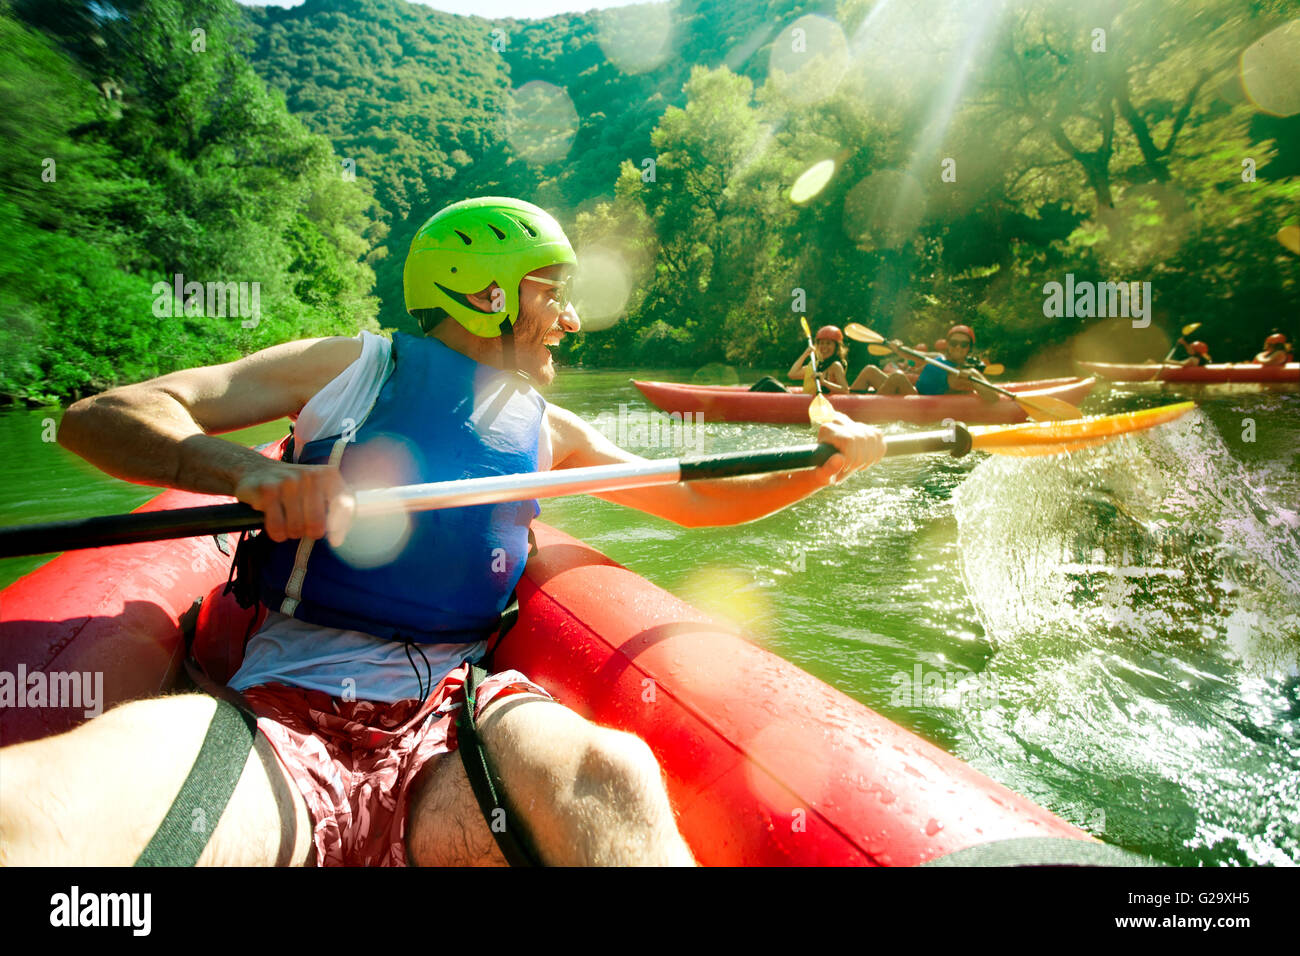 A young main in red inflatable canoe having fun splashing over his friends in a river. - Stock Image